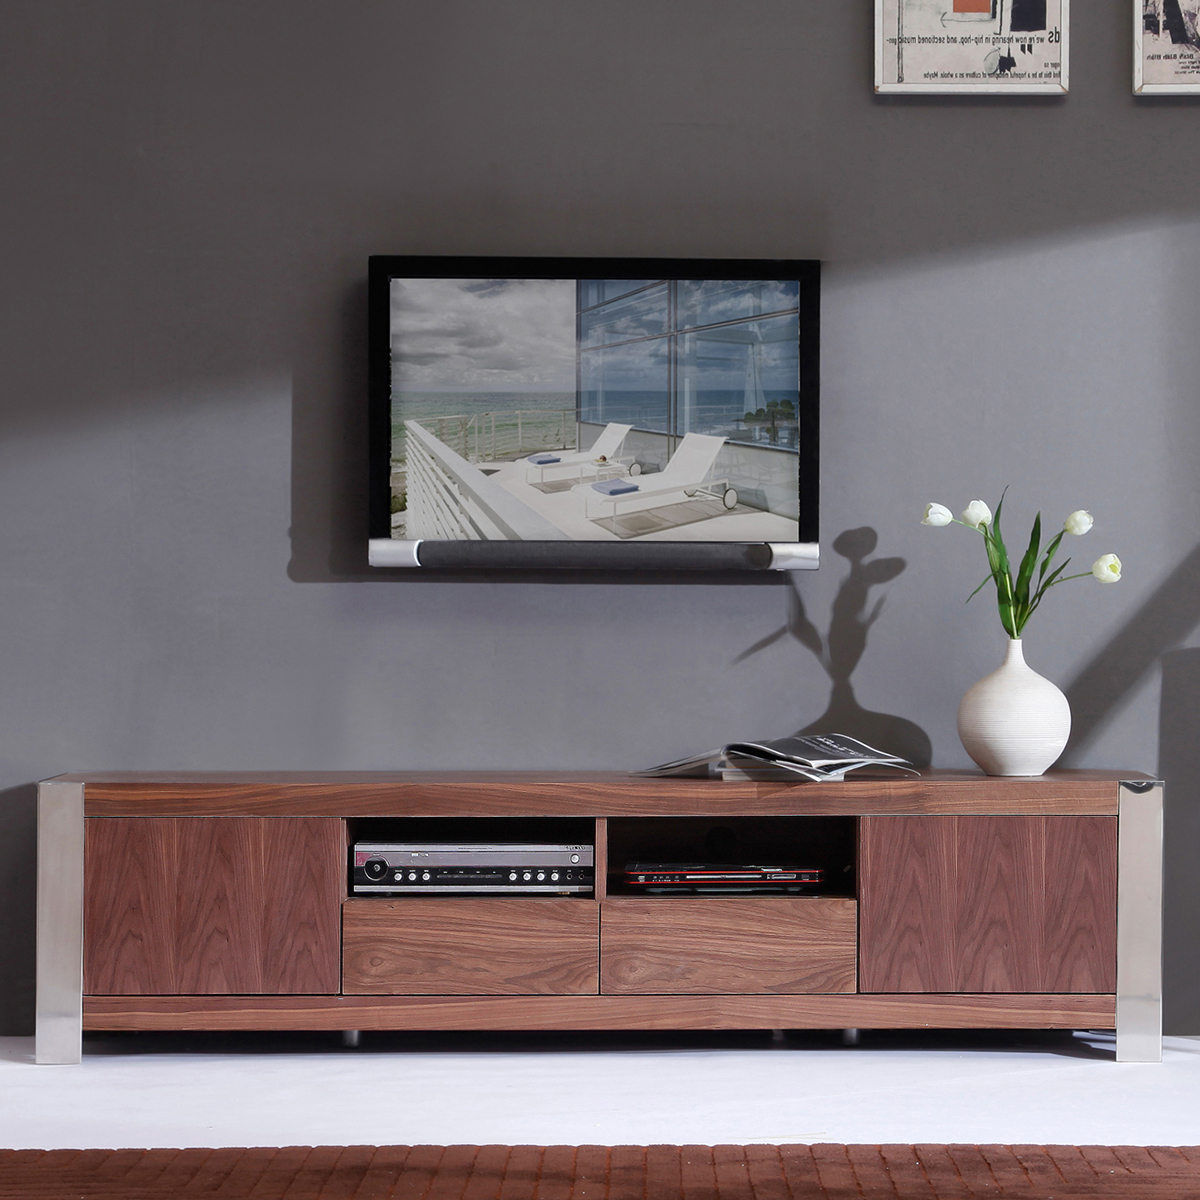 Tv Stands: Amusing 84 Inch Tv Stand Design Ideas 89 Inch Tv, 80 Inch Inside Latest 84 Inch Tv Stands (View 10 of 20)